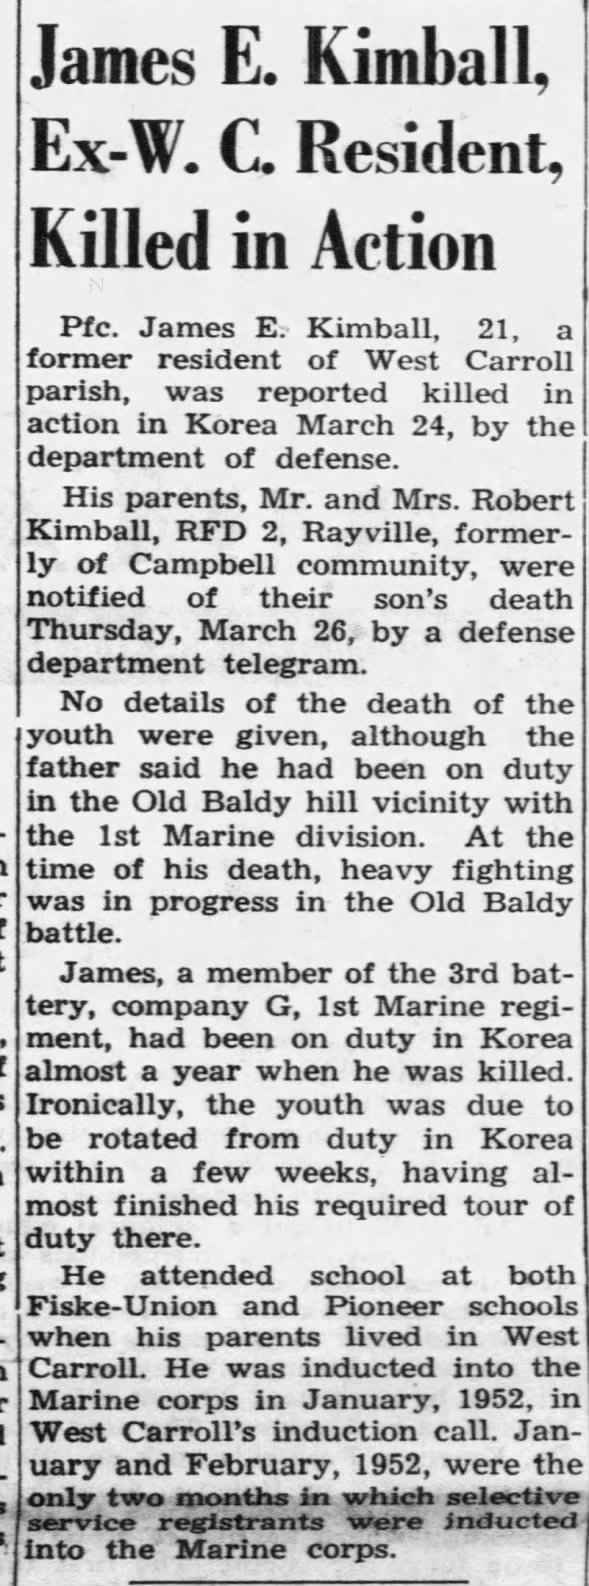 James E. Kimball KIA - Korean War